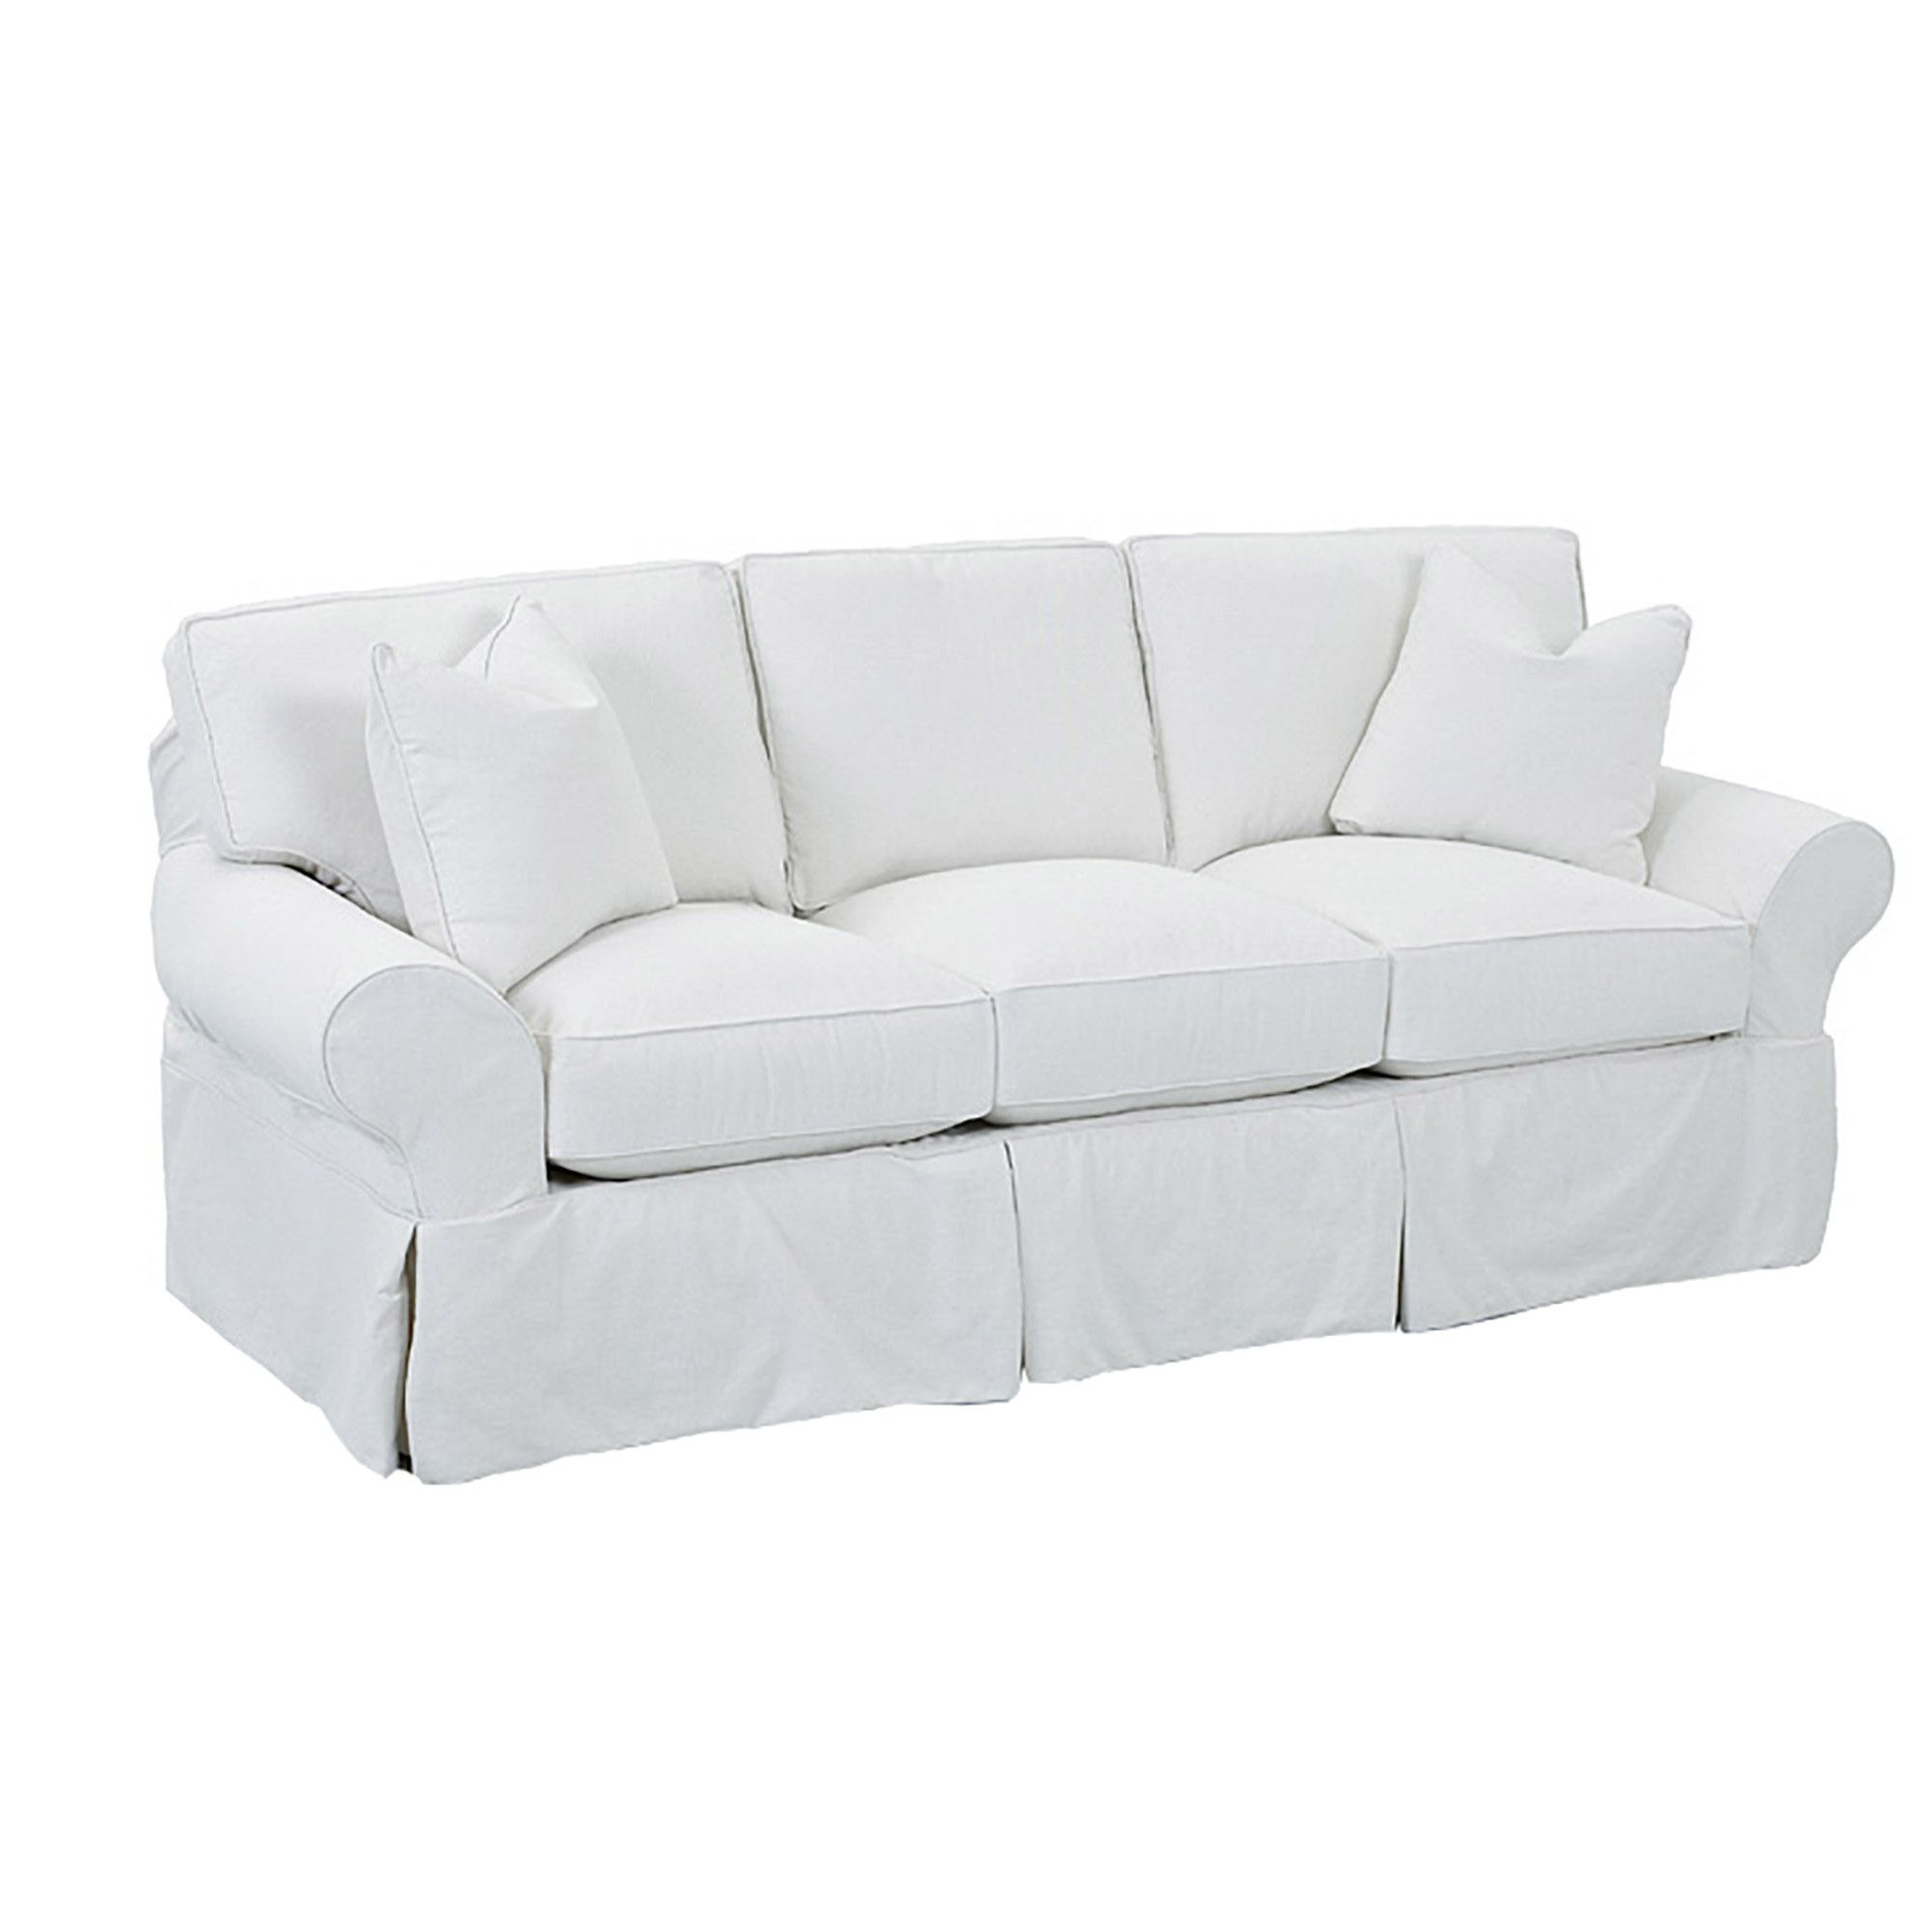 Wayfair Custom Upholstery Casey Sofa Slipcovered Sofa